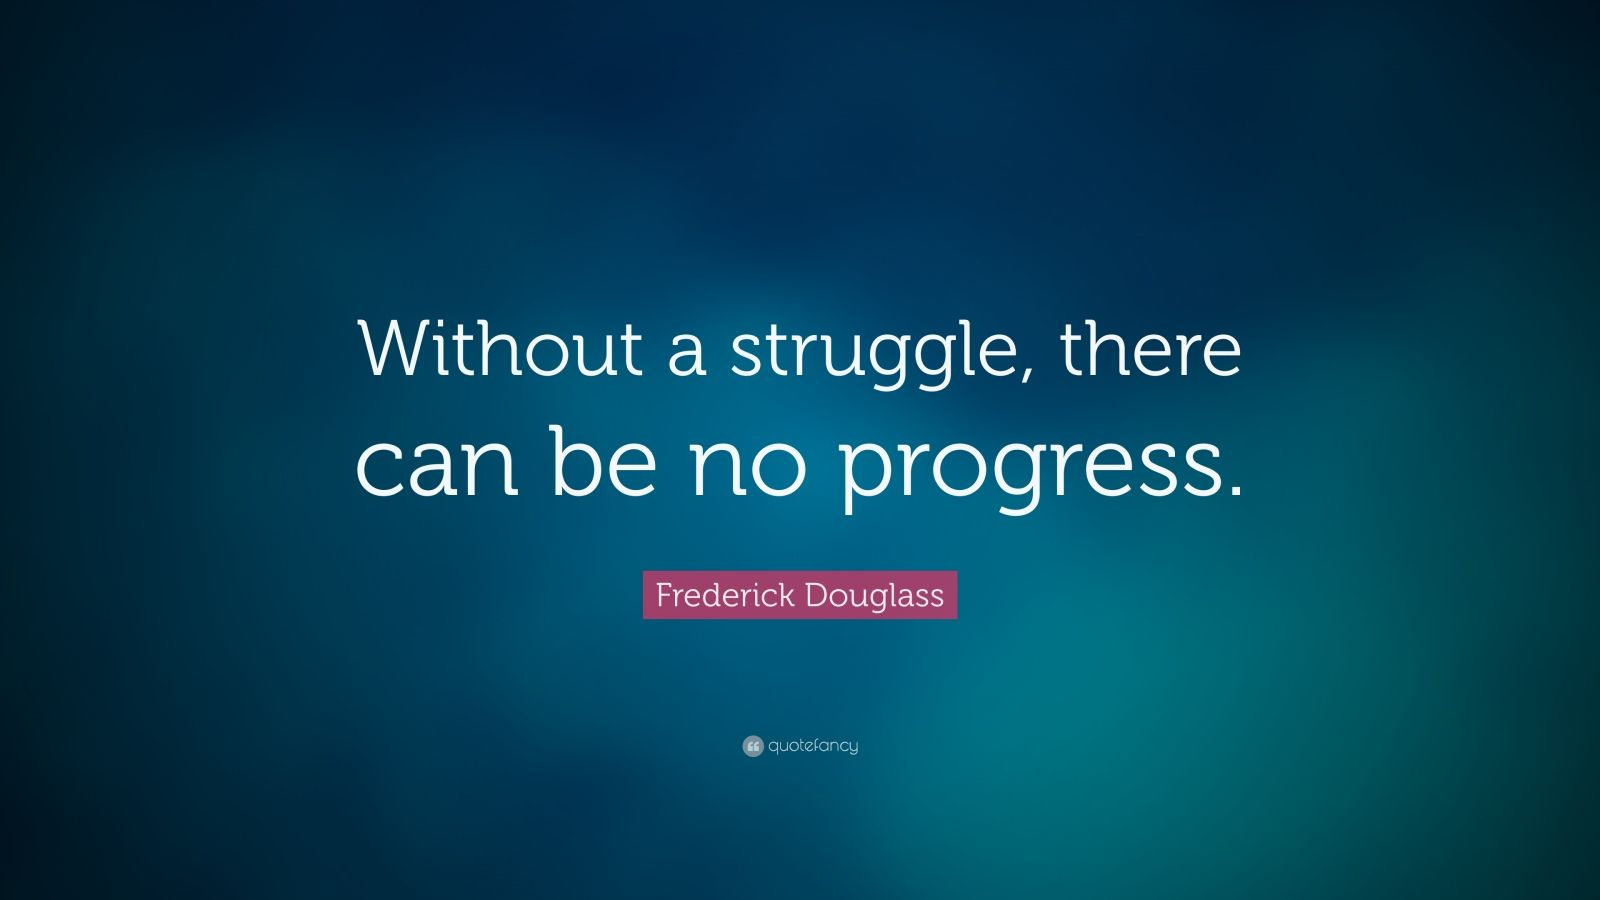 Personal Motivation: Without Struggle There Is No Progress